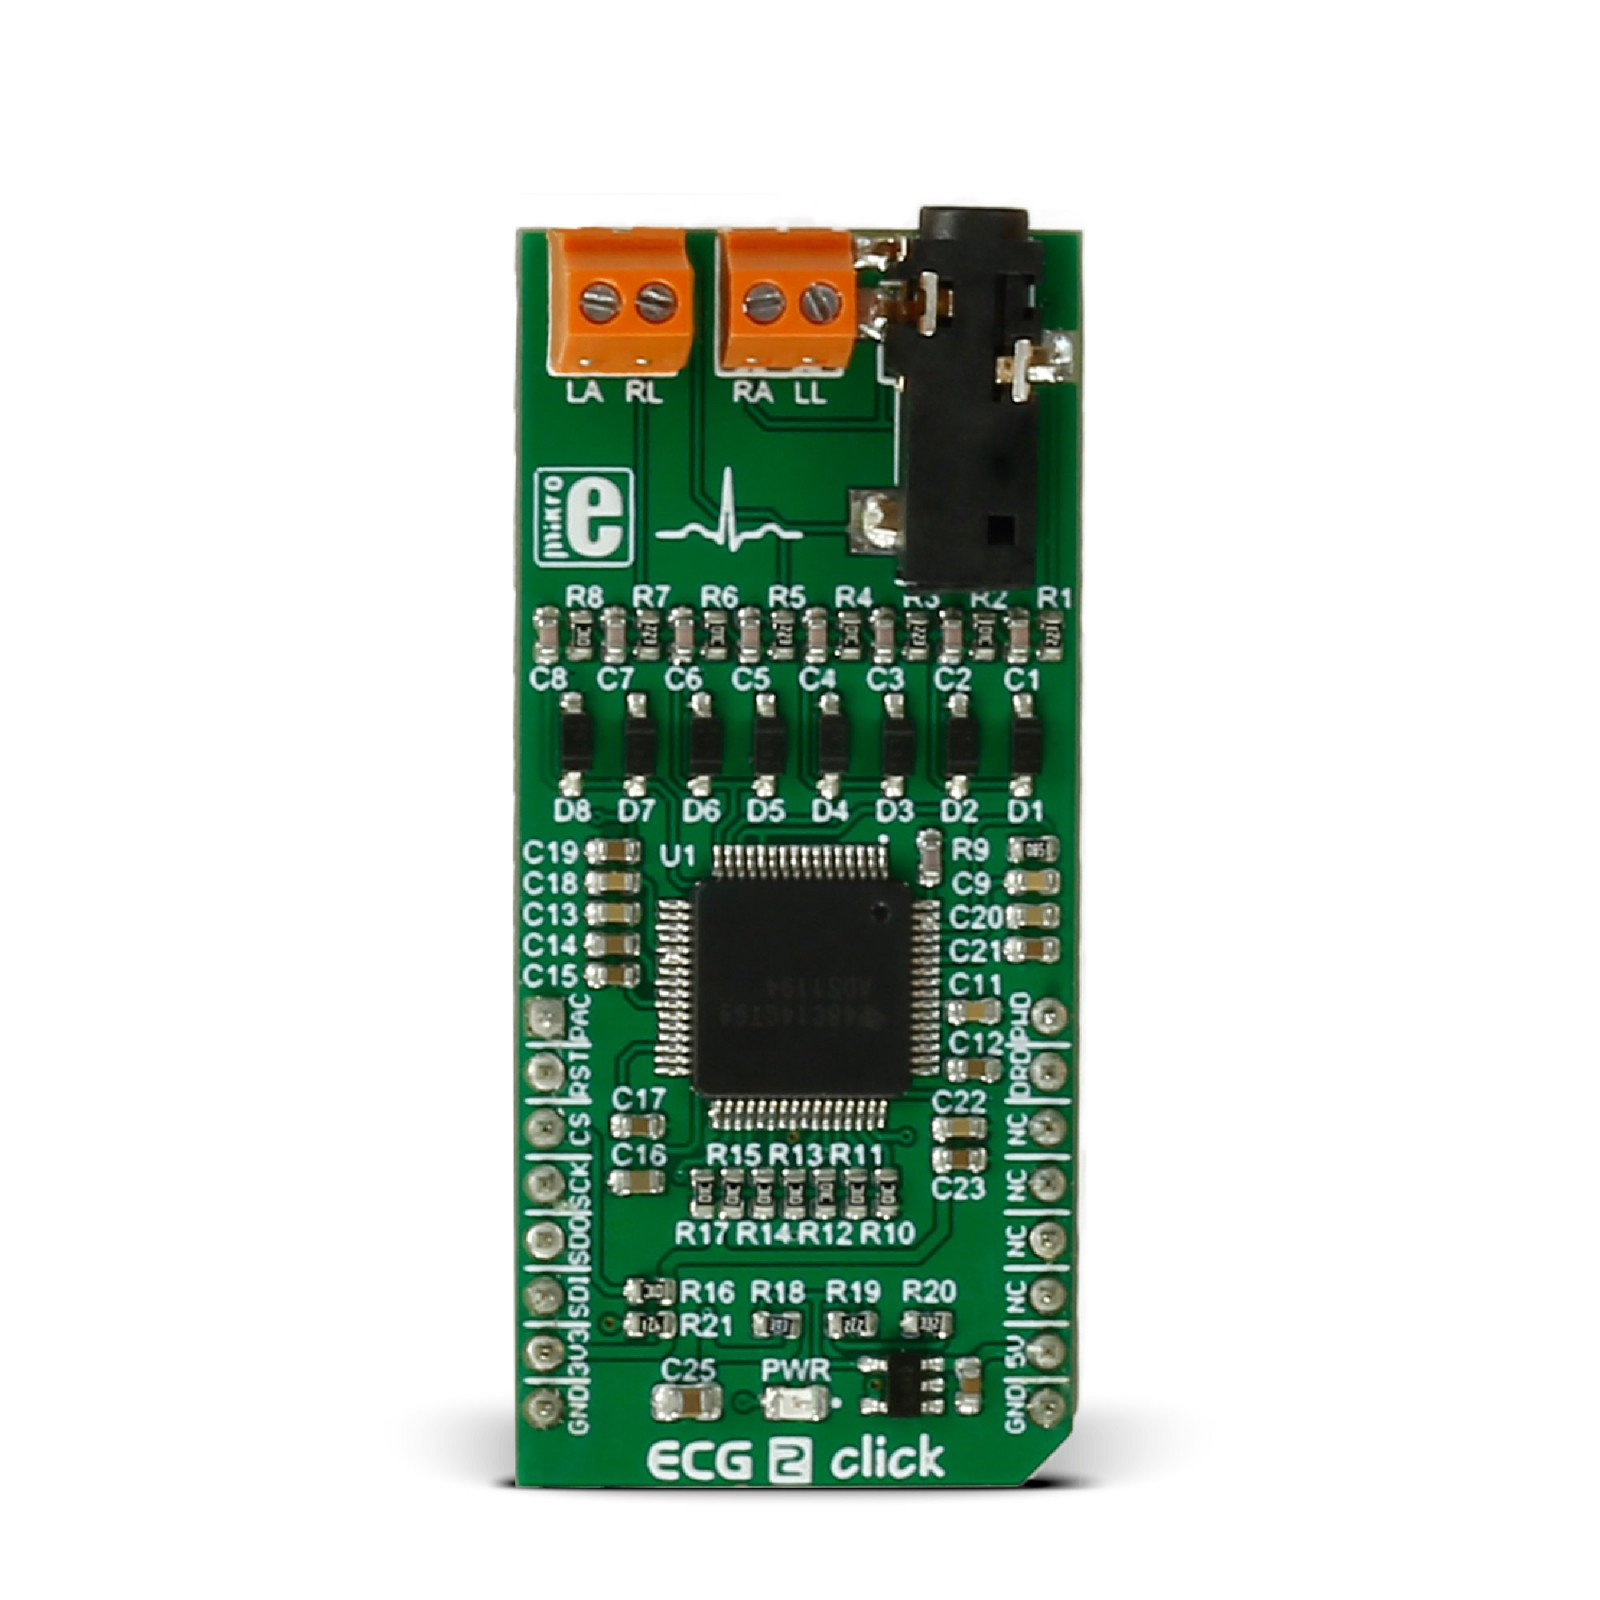 Ecg 2 Click Board With Ads1194 Ad Converter From Texas Instruments Programmer Avr Your Usb Circuit Diagram Nonstopfree Electronic Mgctlbxnmzp Mgctlbxv5112 Mgctlbxlc Mgctlbxpprestashop